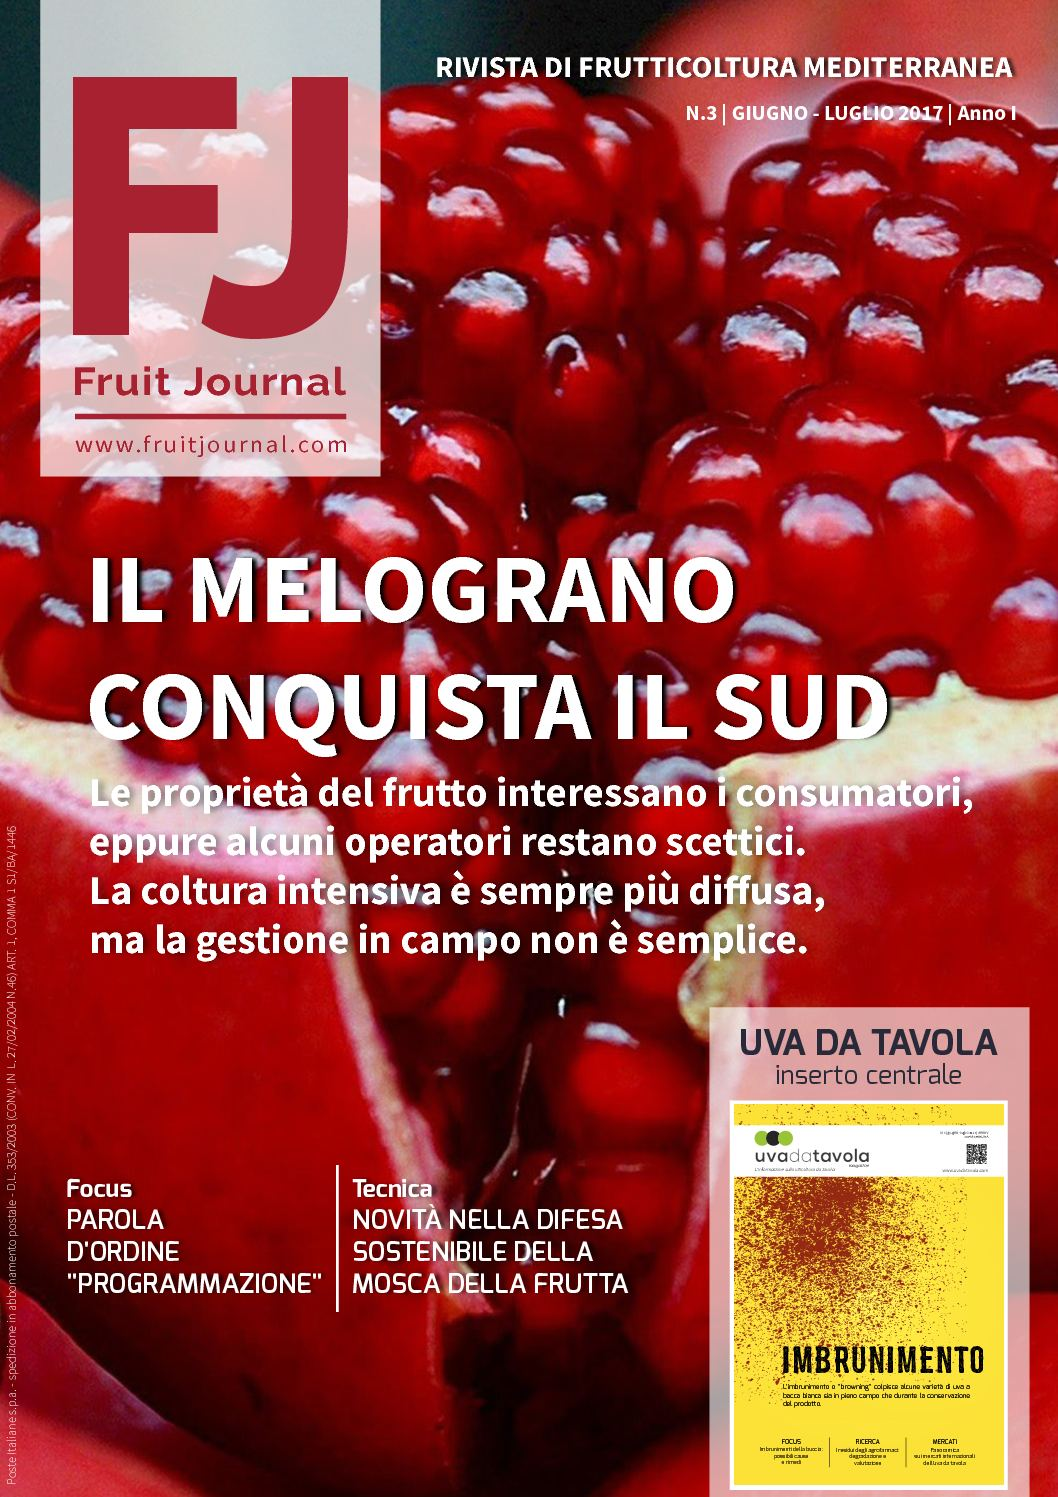 FRUIT JOURNAL - ANNO I N.3